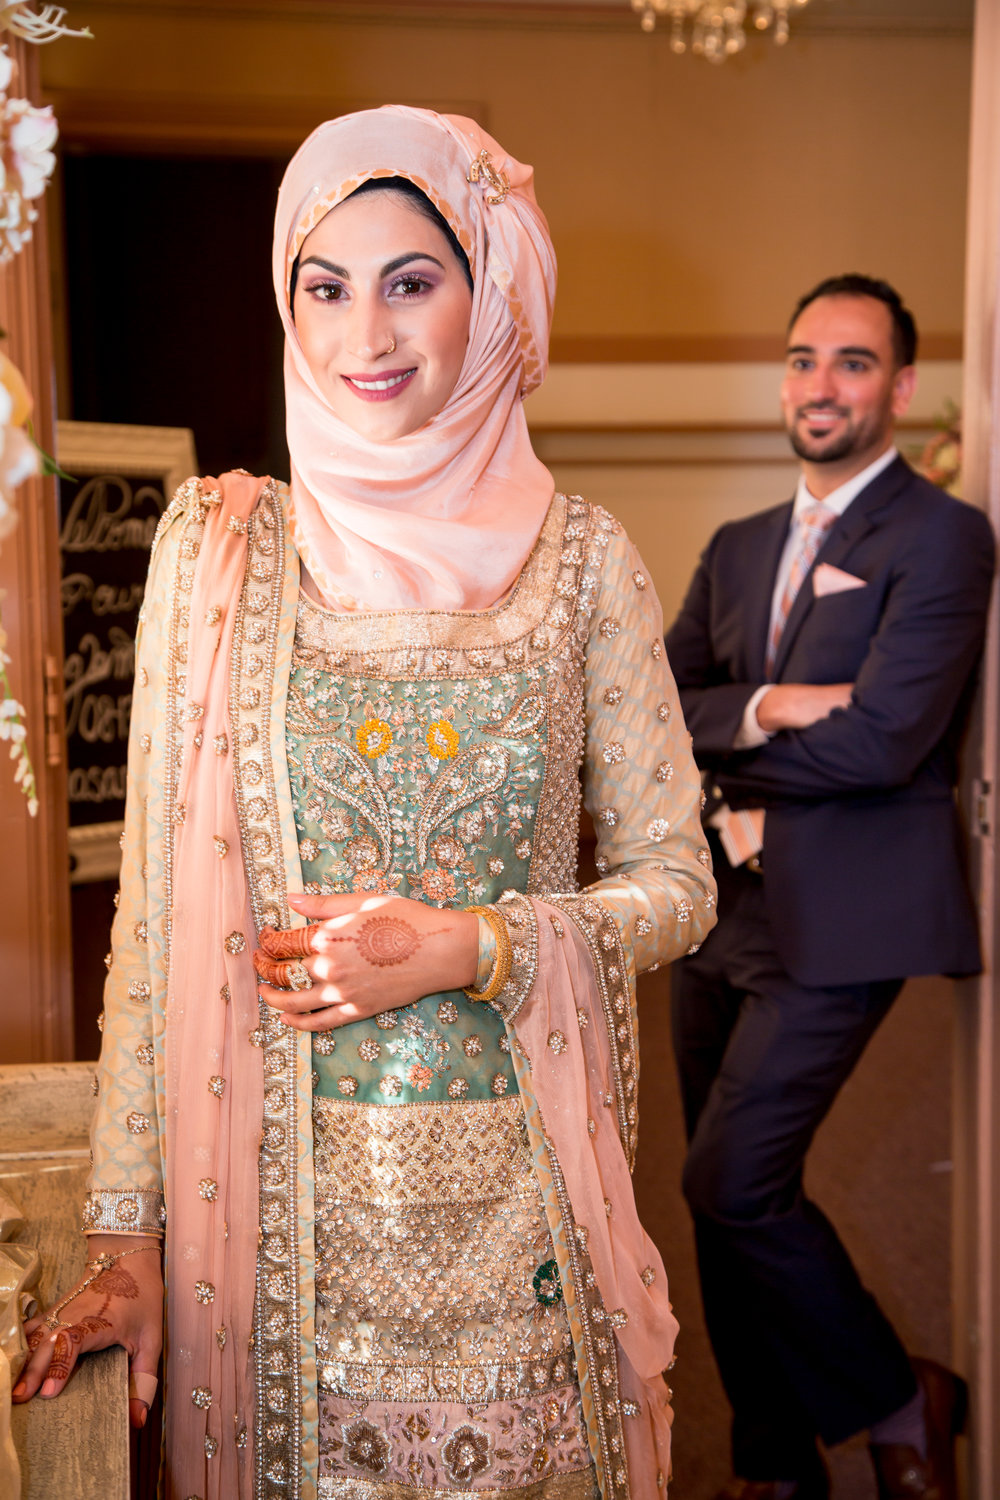 kamal_beverly_hills_bridal_review_testimonial_pakistani_hijab_bride_traditional_elan_karma_faraz_manan_sabyasachi_designer_bridal_buy_usa_custom_order_boutique_usa.jpg